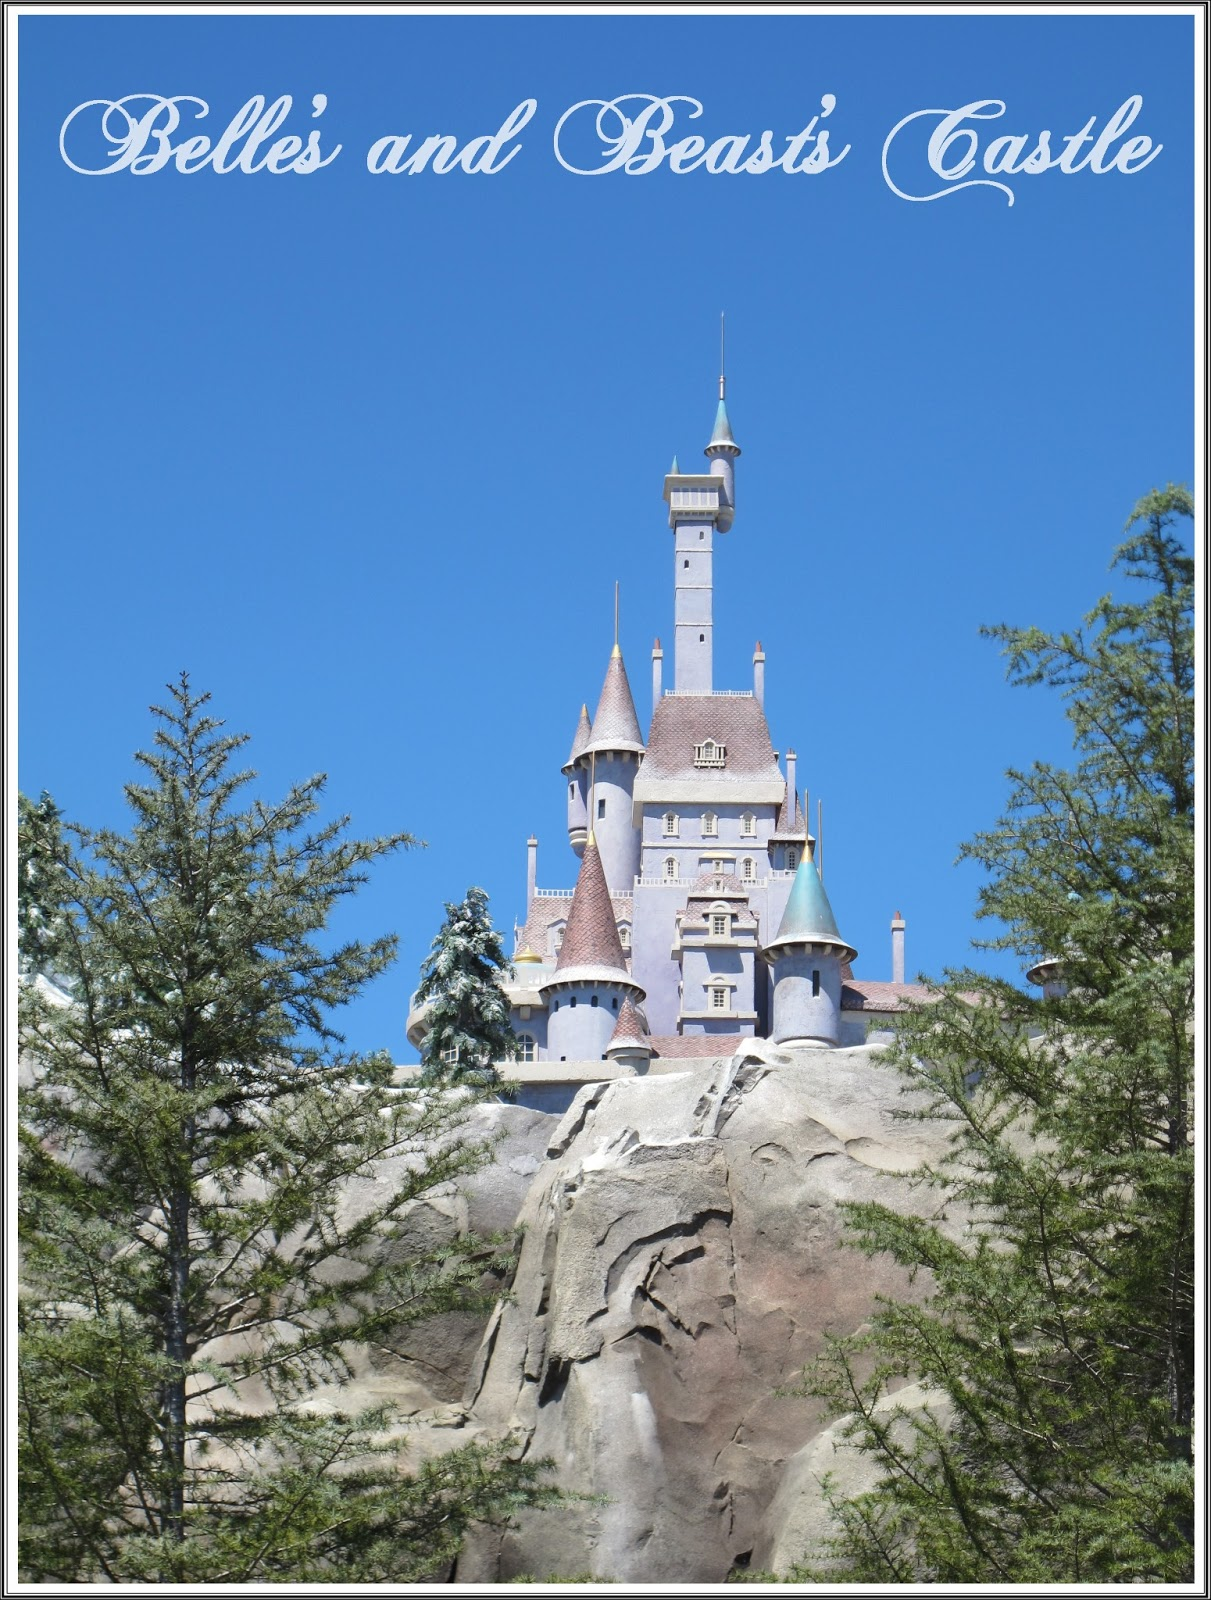 Be Our Guest Restaurant Beast And Belle 39 S Castle At